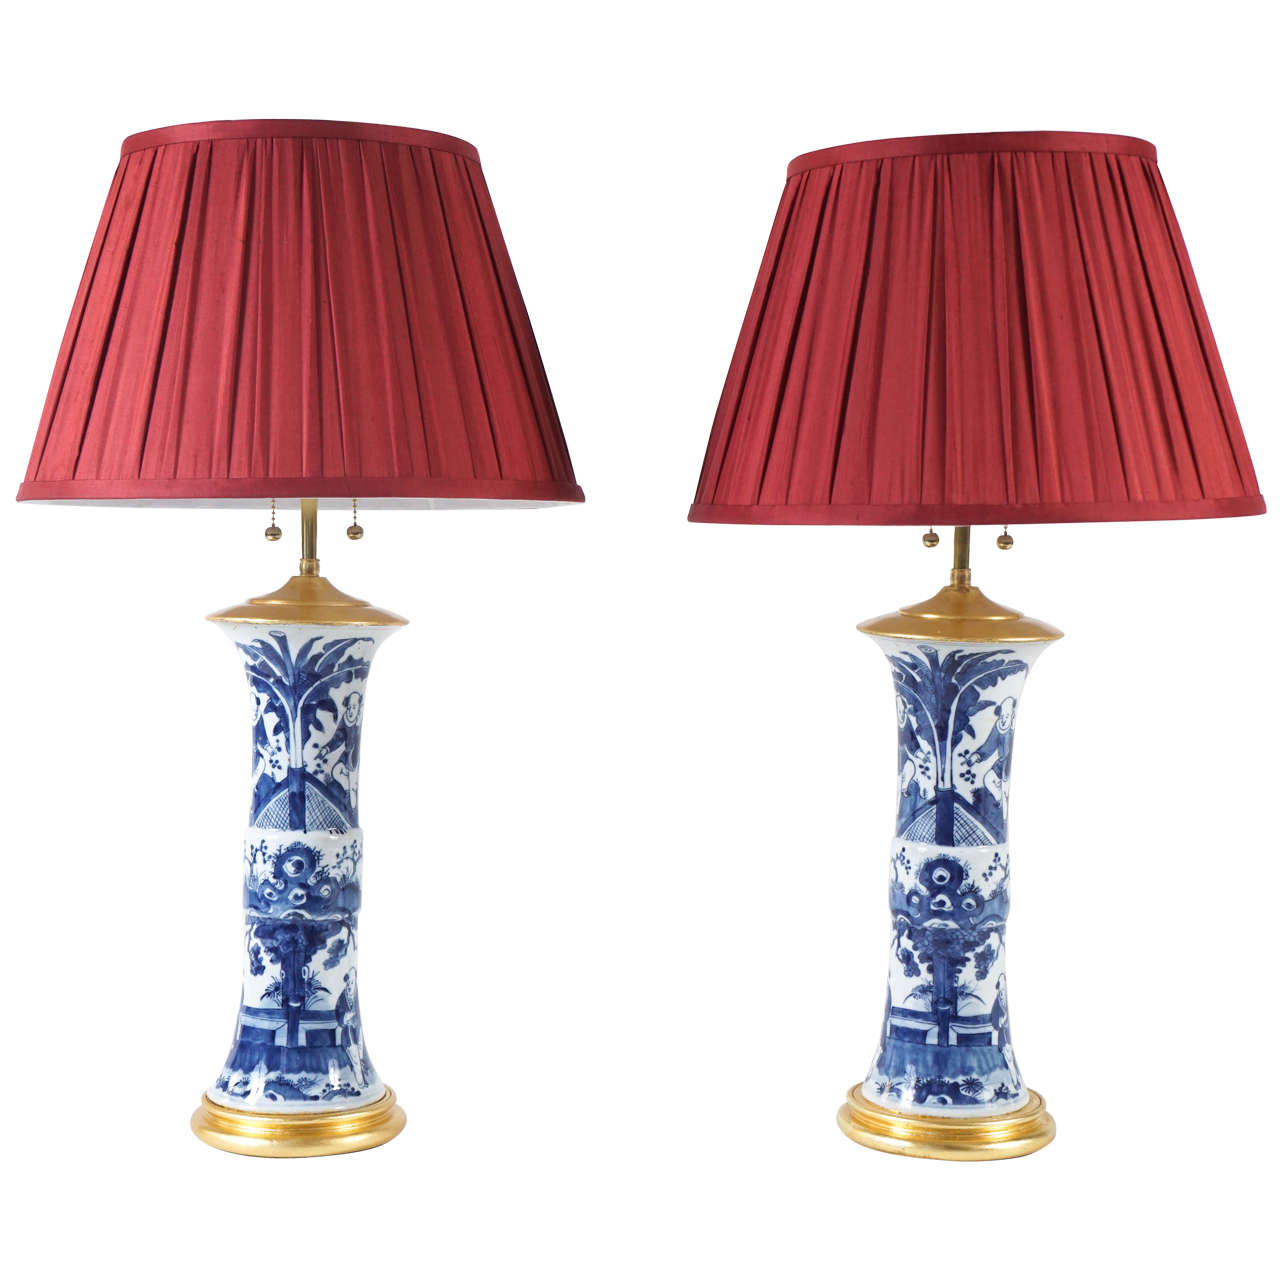 Table Lamps Bellacor Images The Amazing French Country